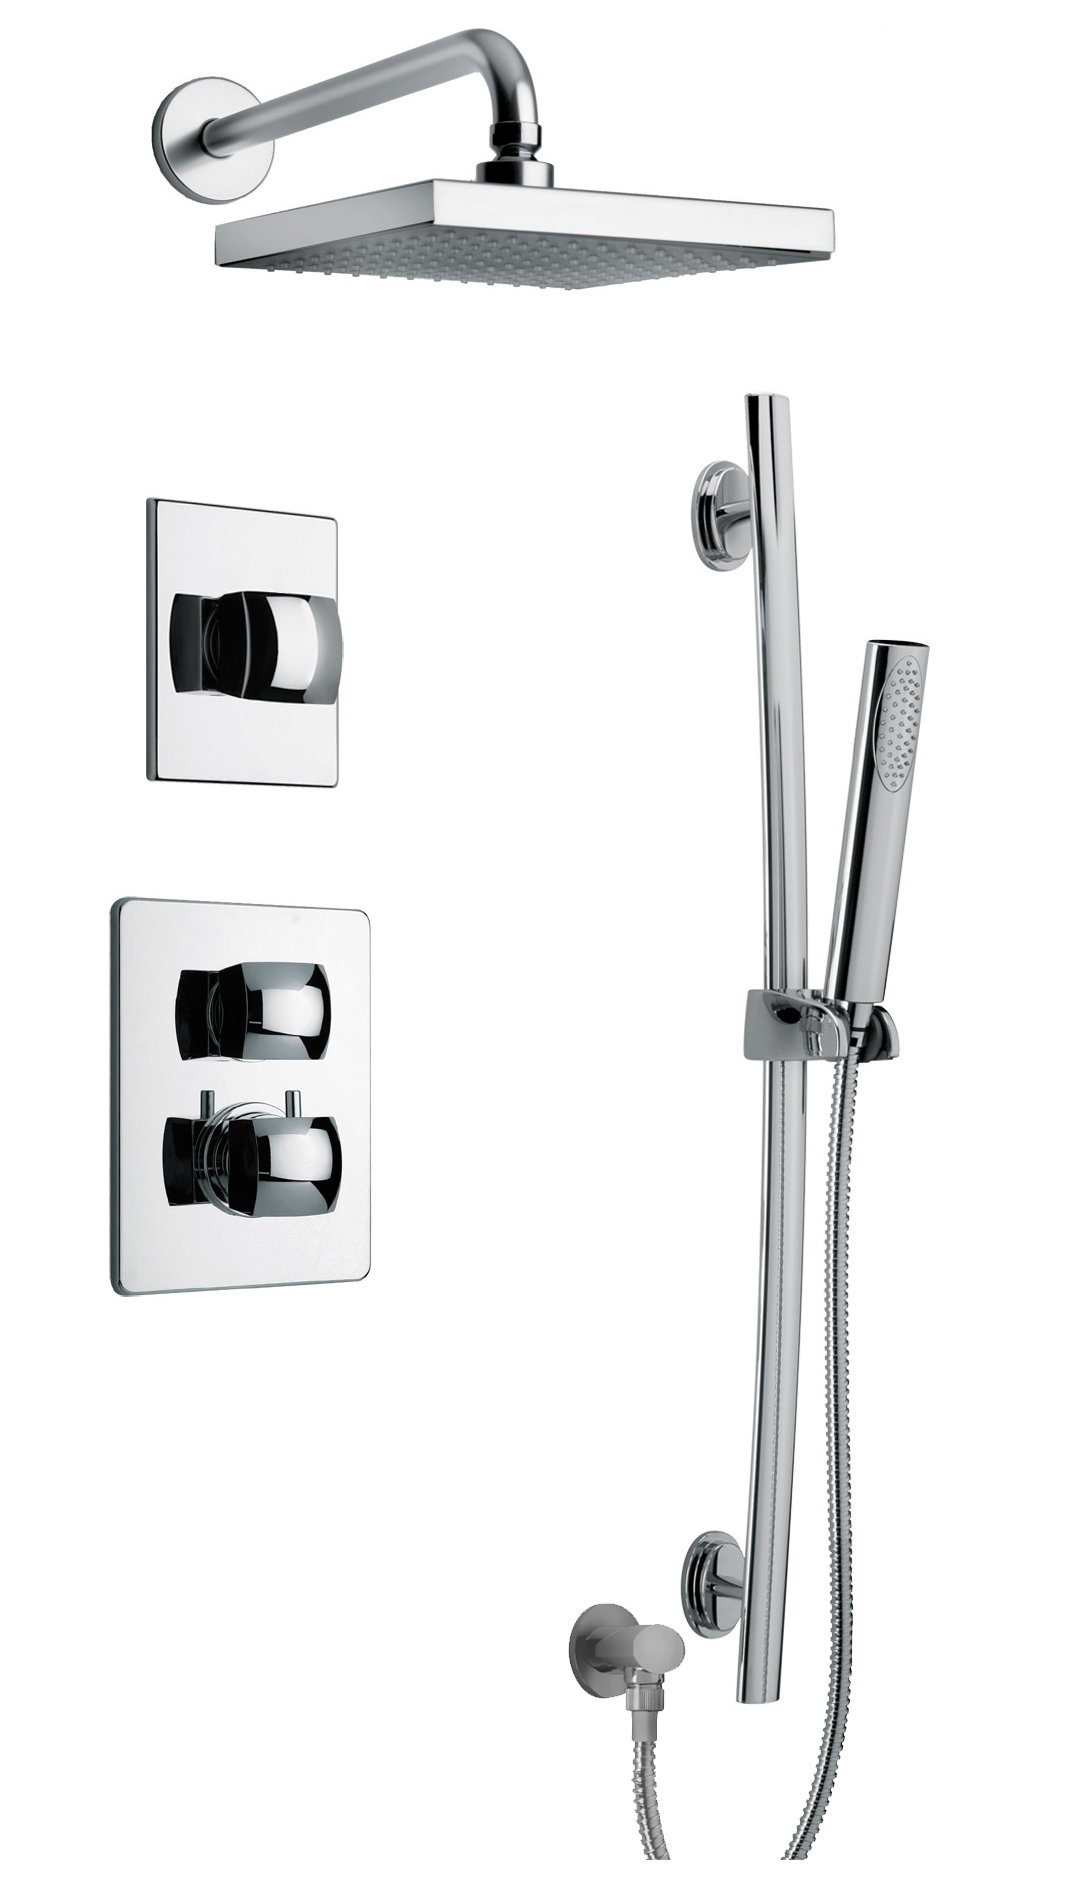 "Thermostatic Shower With 3/4"" Ceramic Disc Volume Control, 3-Way Diverter and Slide Bar in Chrome"